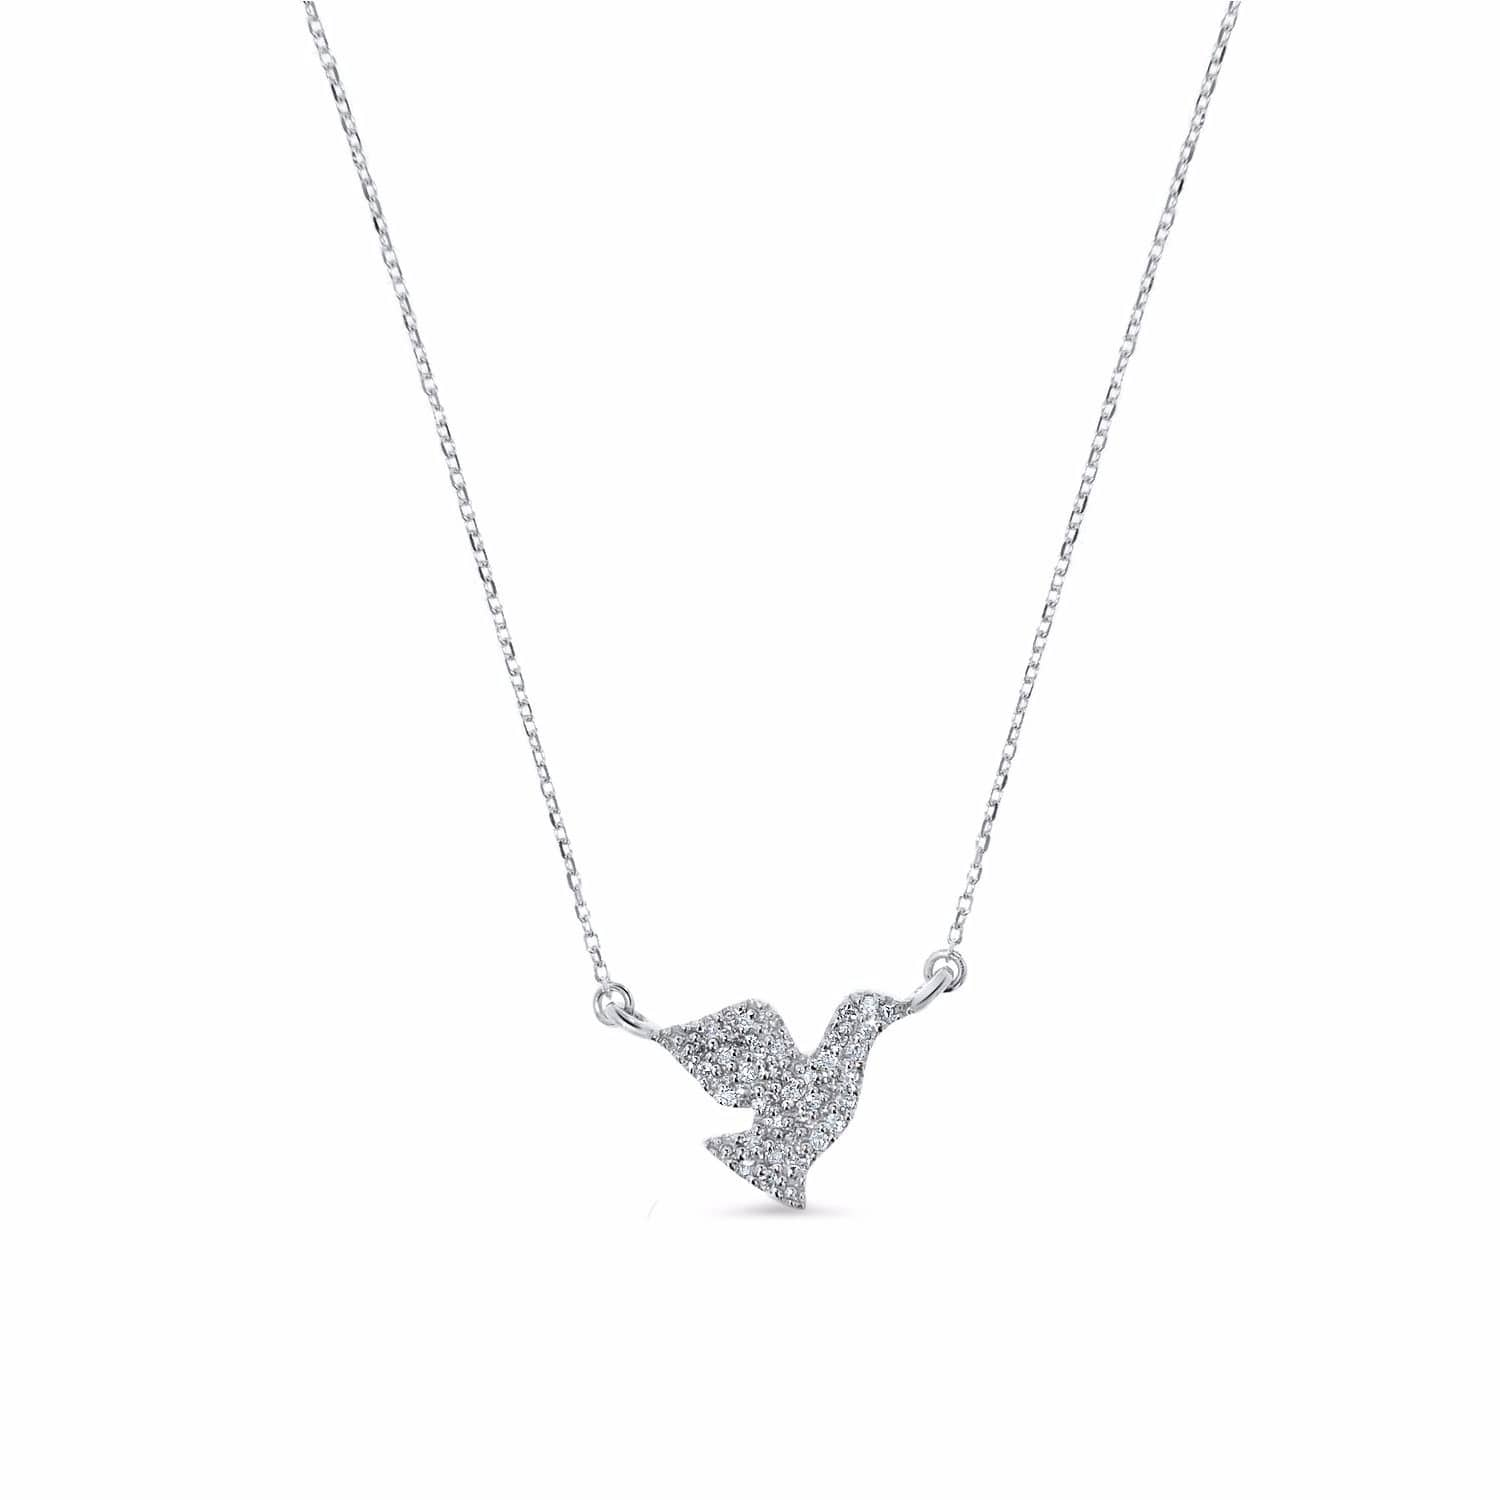 jewellery chain bonas silver pendant oliver dove necklace